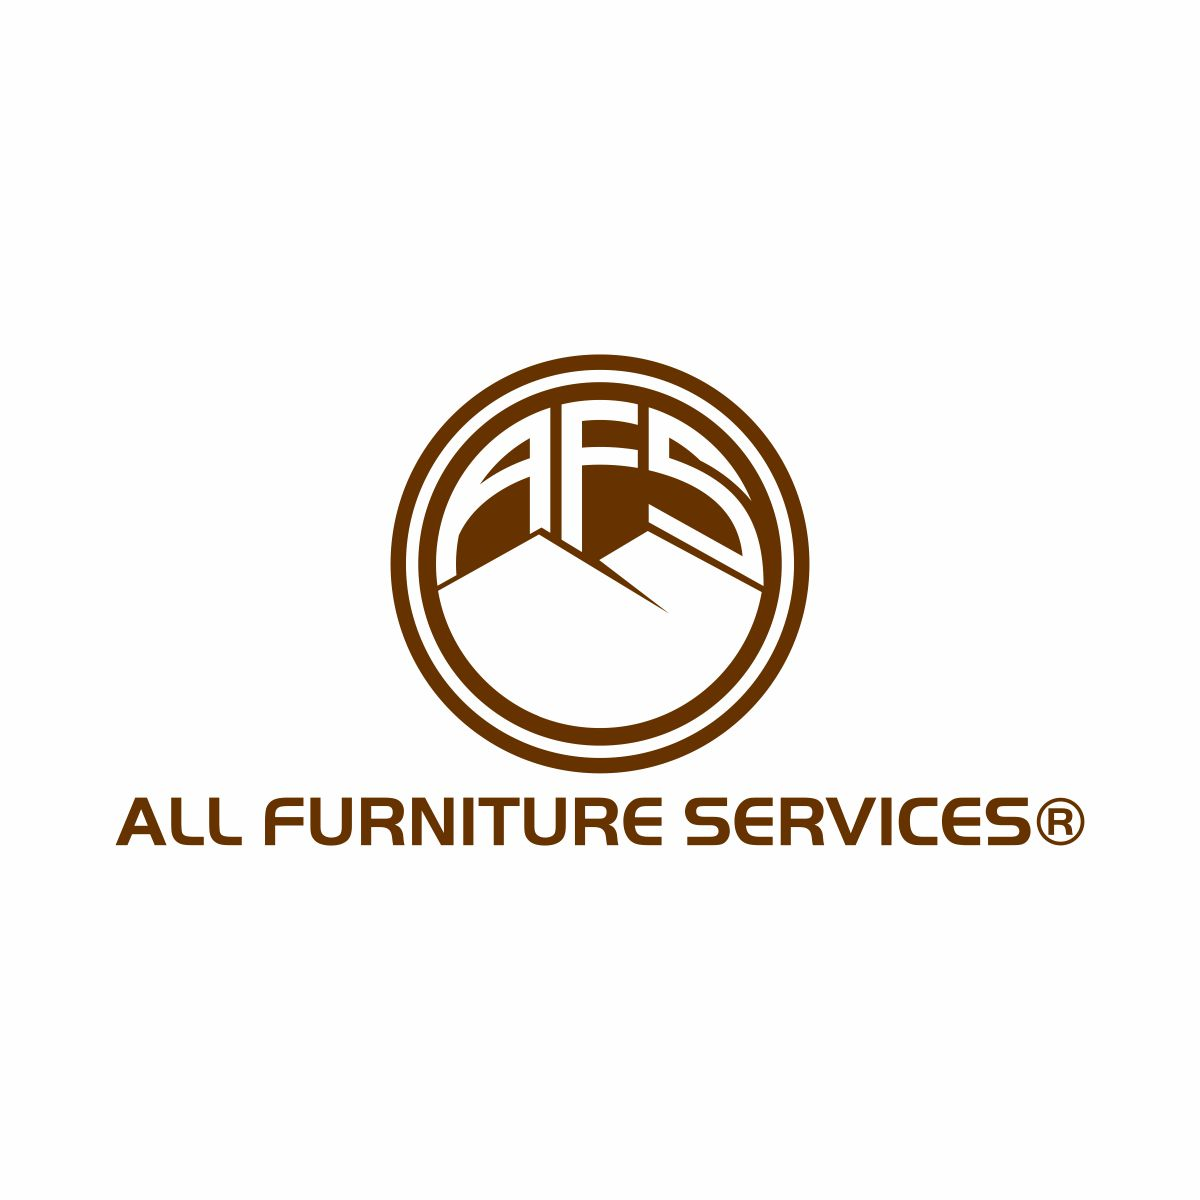 Logo Design By Papamnoguera For AFS All Furniture Services   Logo   Design  #14157016